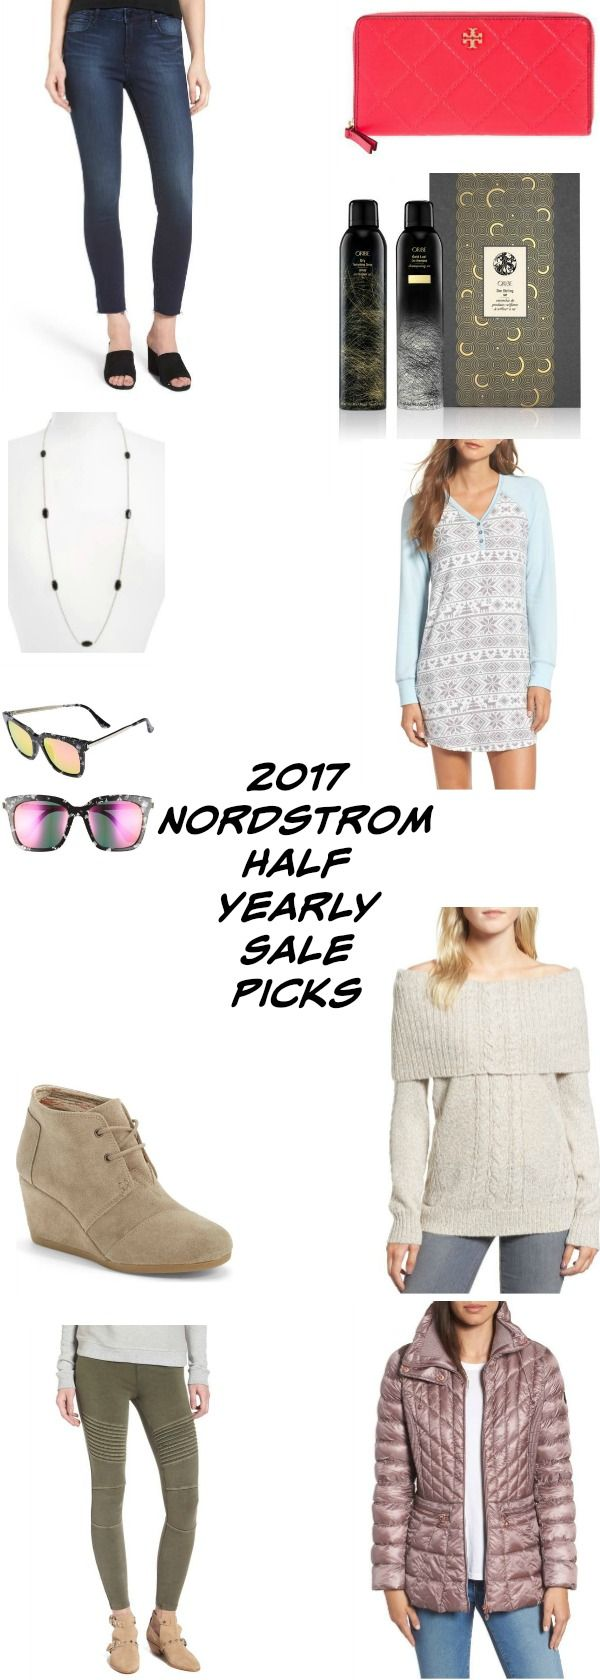 My Picks from the 2017 Nordstrom Half Yearly Sale - All of my favorite finds from the Half Yearly Sale - The Blessed Mess - www.theblessedmessblog.com